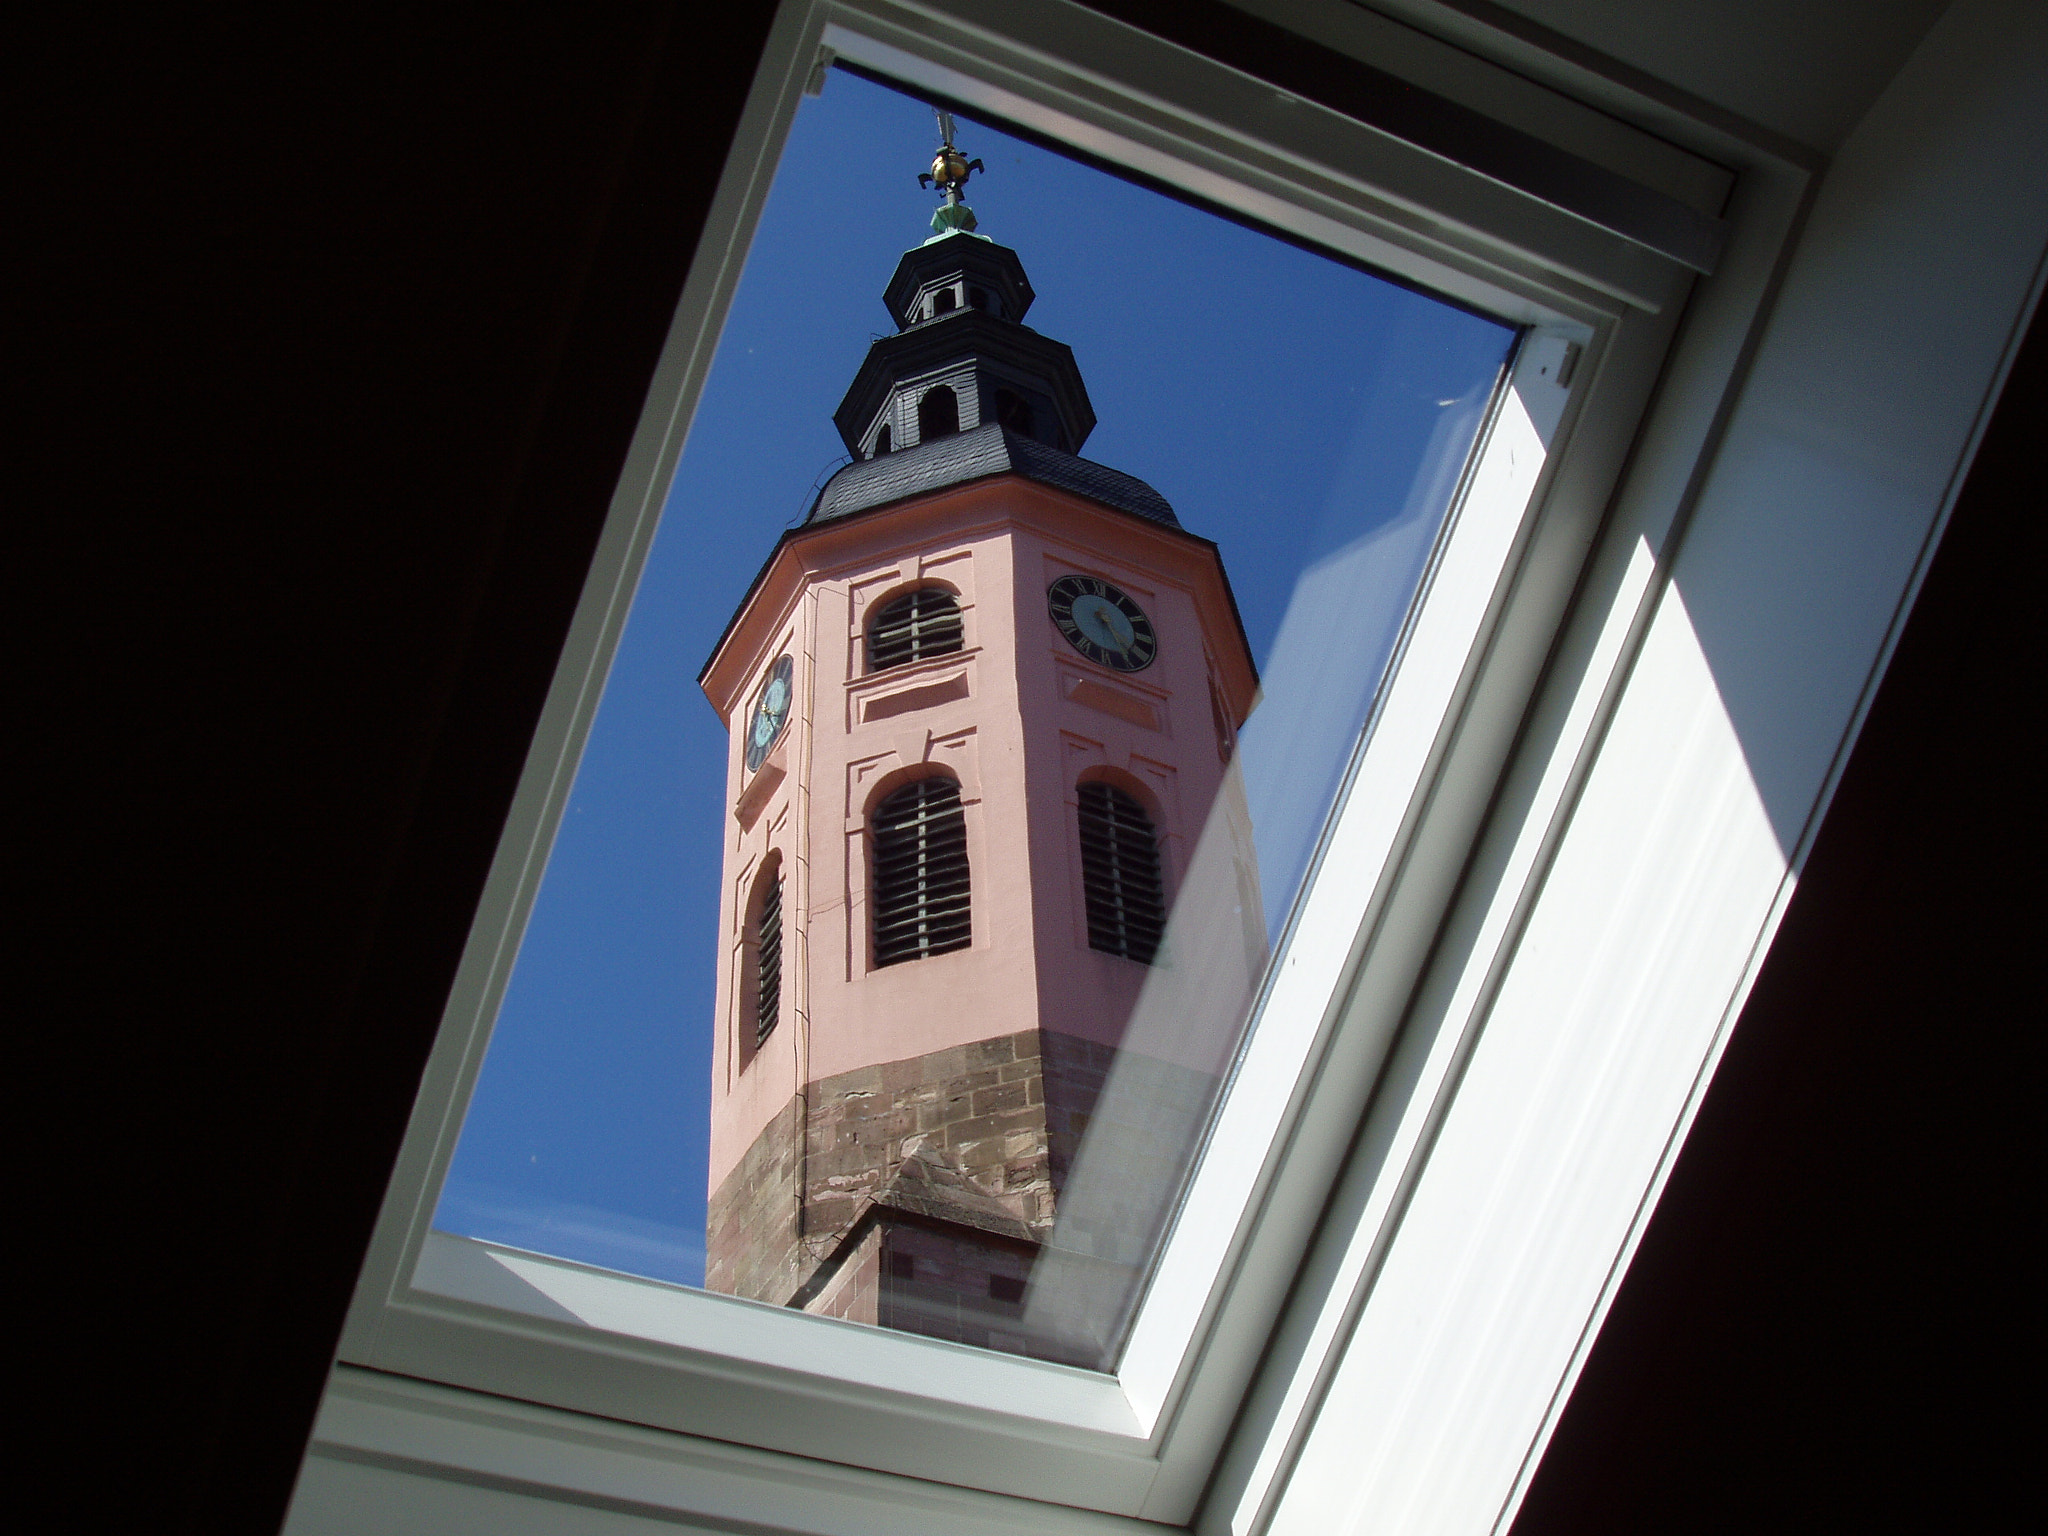 Photograph Stiftskirche Bell Tower Through Skylight by Michael Card on 500px